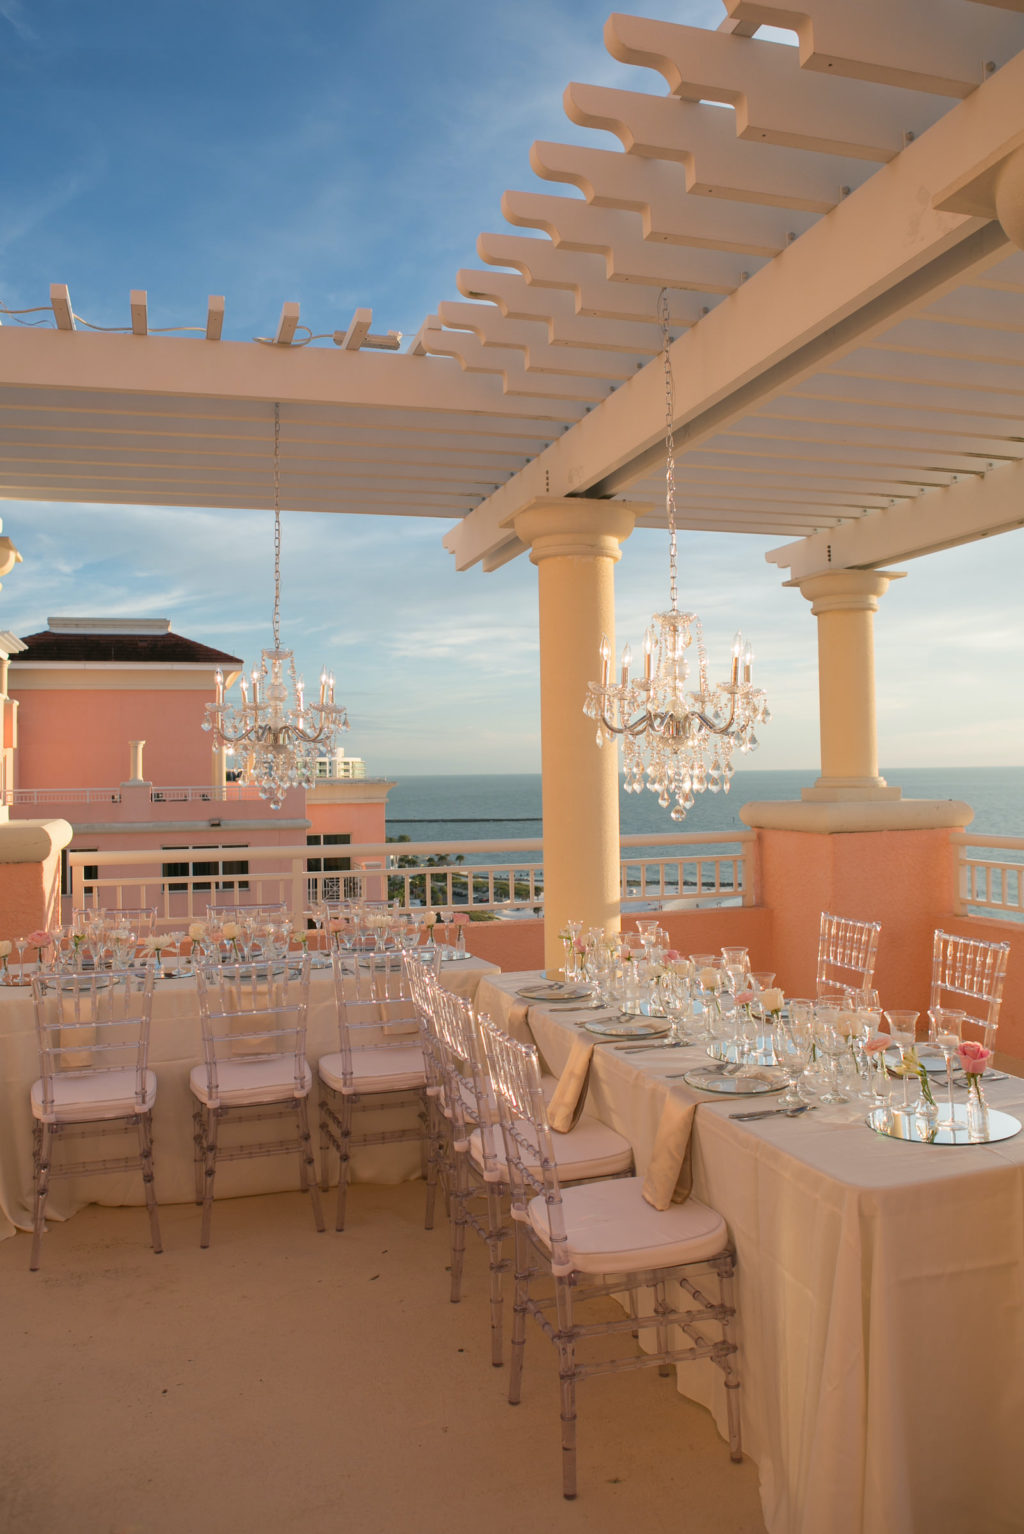 Elegant Modern Wedding Reception Decor on Rooftop Balcony of Waterfront Wedding Venue Hyatt Regency Clearwater Beach, Long Tables with Acrylic Chiavari Chairs, Hanging Crystal Chandeliers | Tampa Bay Wedding Photographer Carrie Wildes | Wedding Planner Coastal Coordinating | Wedding Rentals Outside the Box